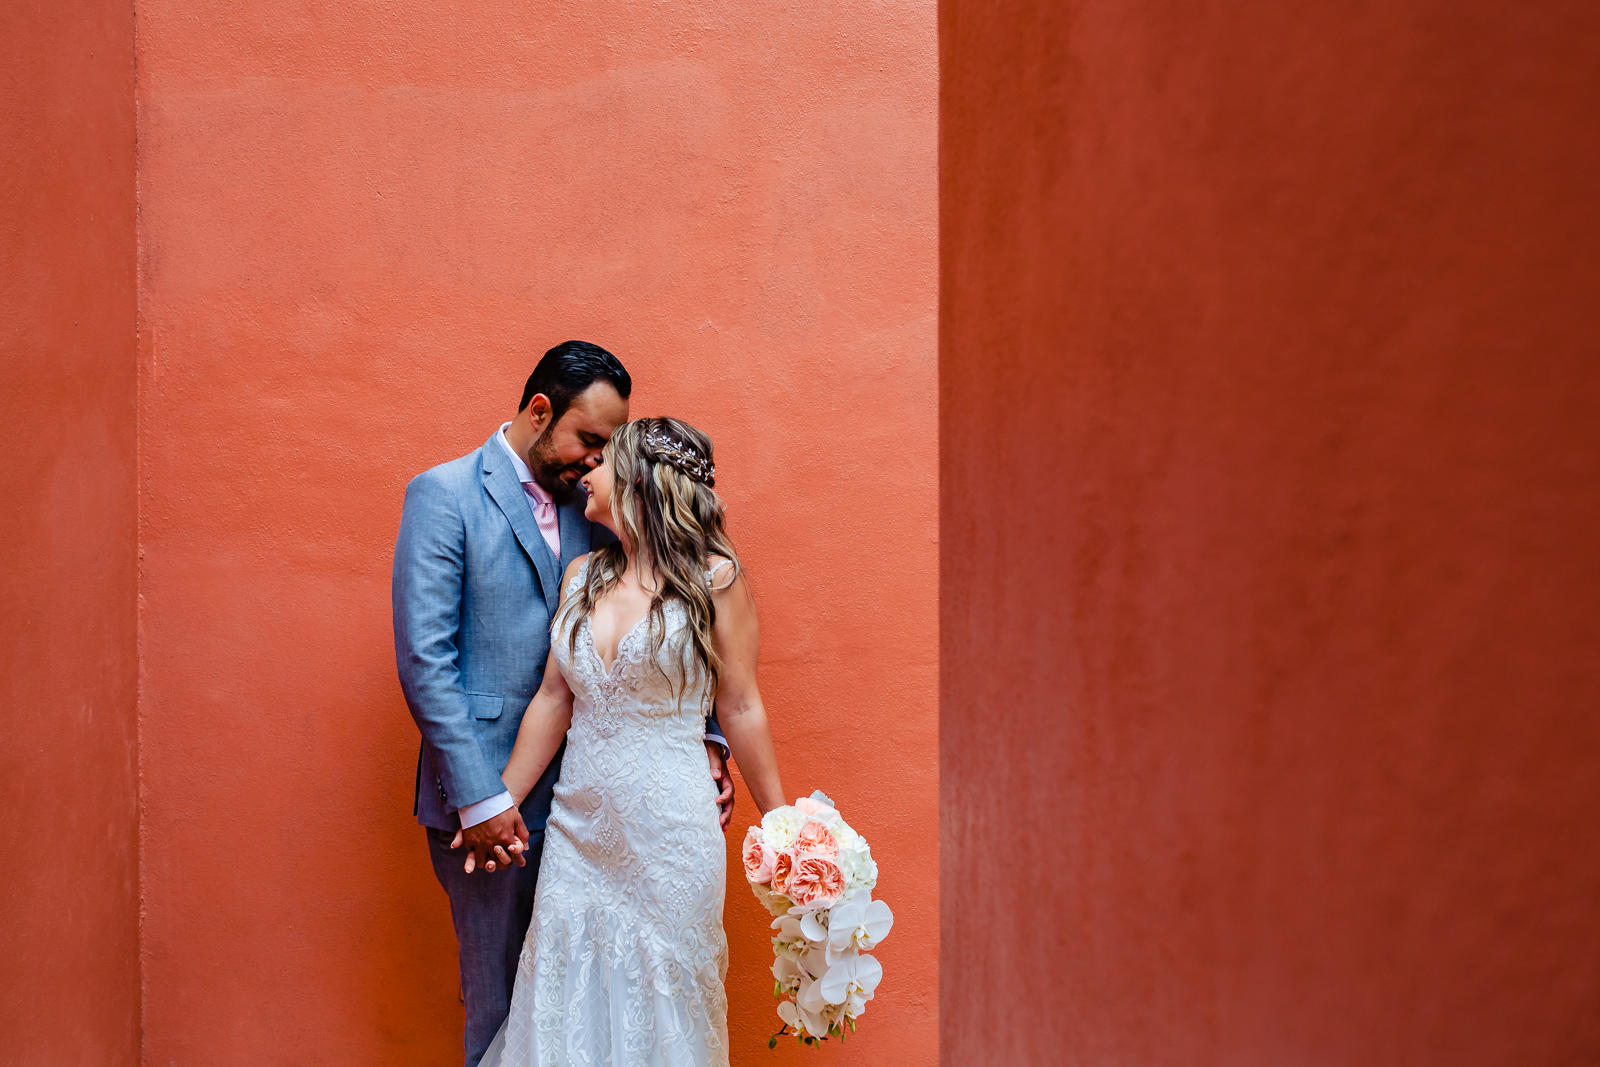 bride and groom hugs and touch his face on a red wall